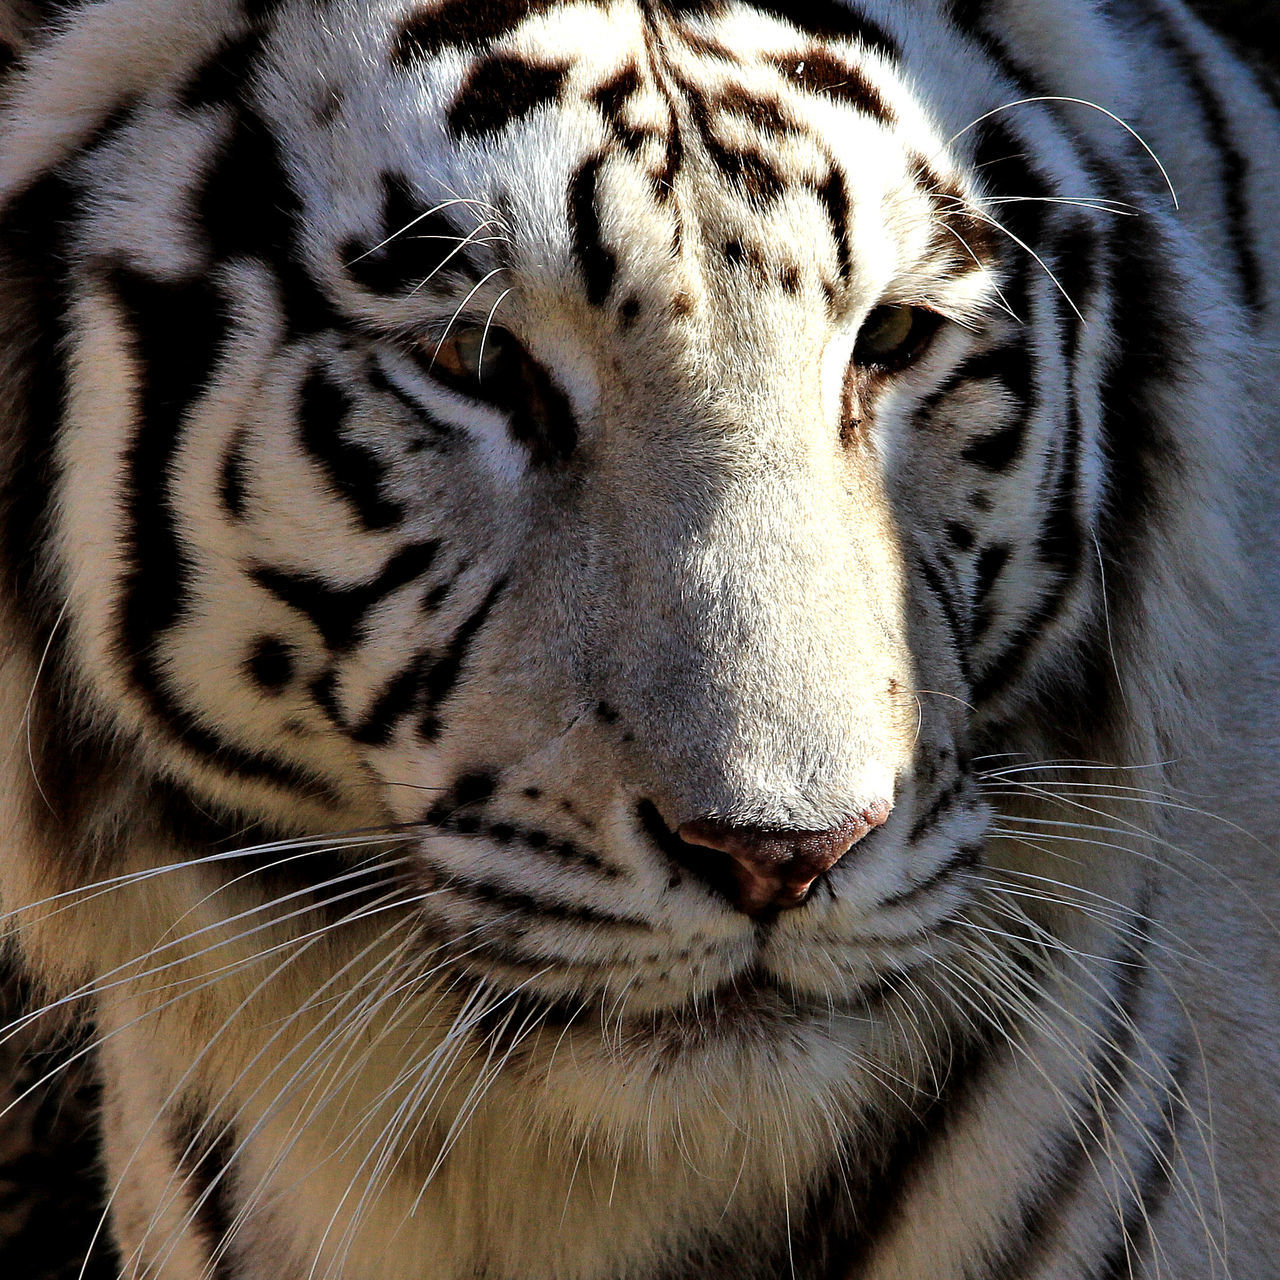 tiger, one animal, animals in the wild, animal wildlife, animal themes, striped, white tiger, endangered species, whisker, animal markings, no people, close-up, day, mammal, nature, outdoors, leopard